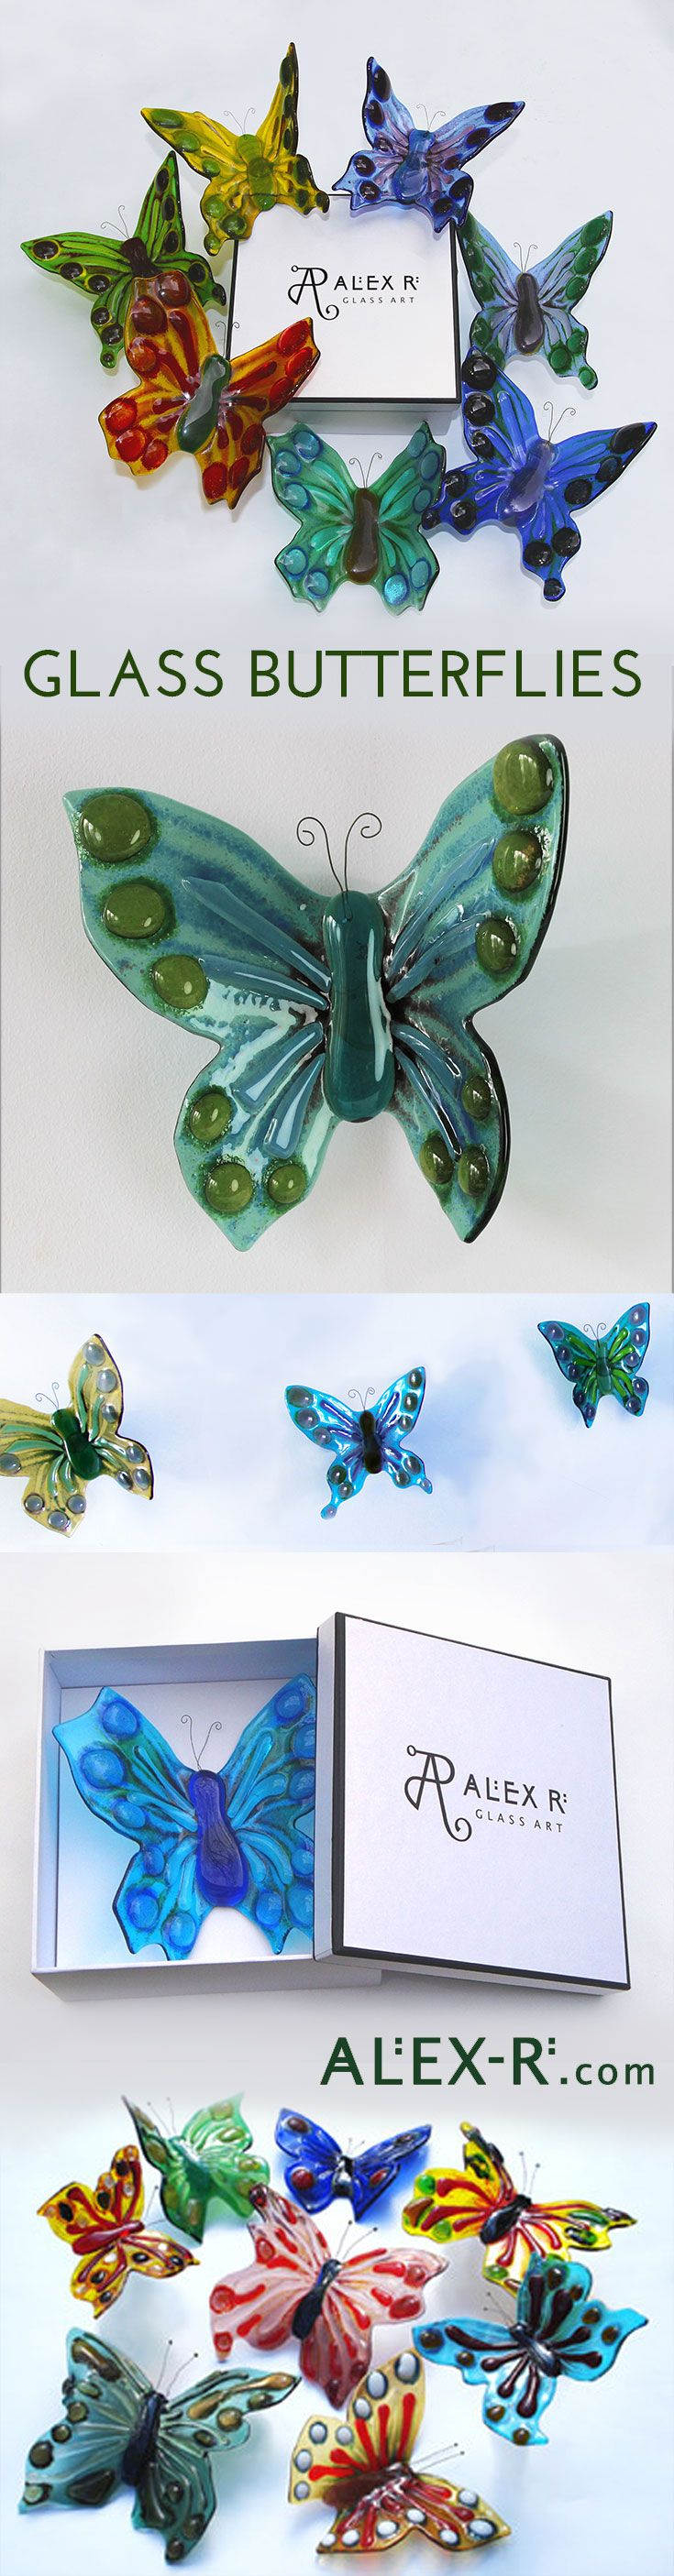 Glass Butterflies are unique three-dimensional artpieces for your wall. Mount a single standalone piece or create a fabulous wall installation in a kaleidoscope of colour. www.alex-r.com